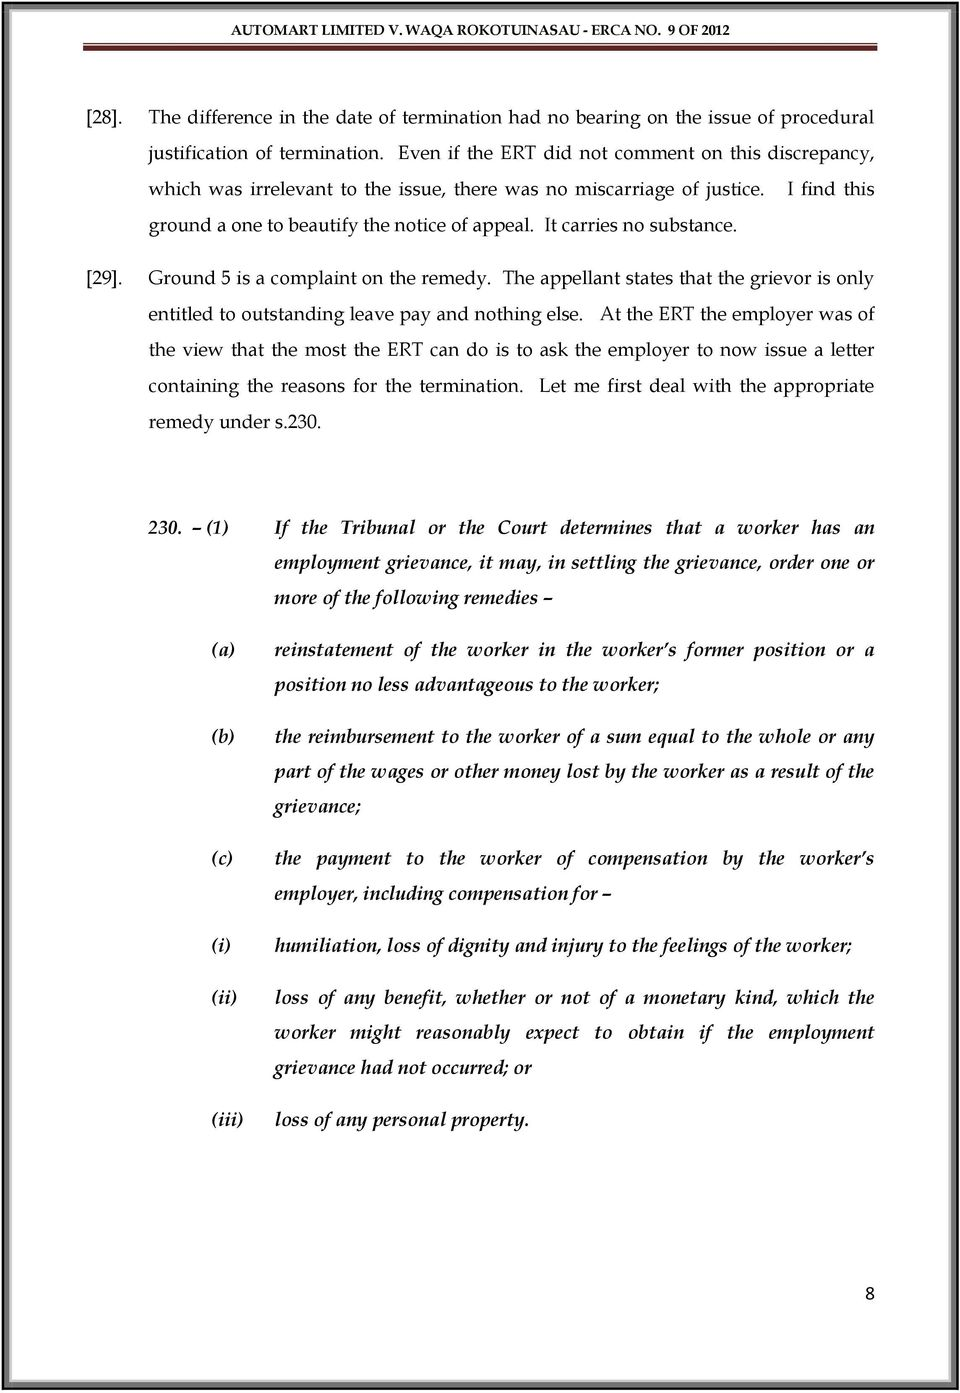 I find this [29]. Ground 5 is a complaint on the remedy. The appellant states that the grievor is only entitled to outstanding leave pay and nothing else.